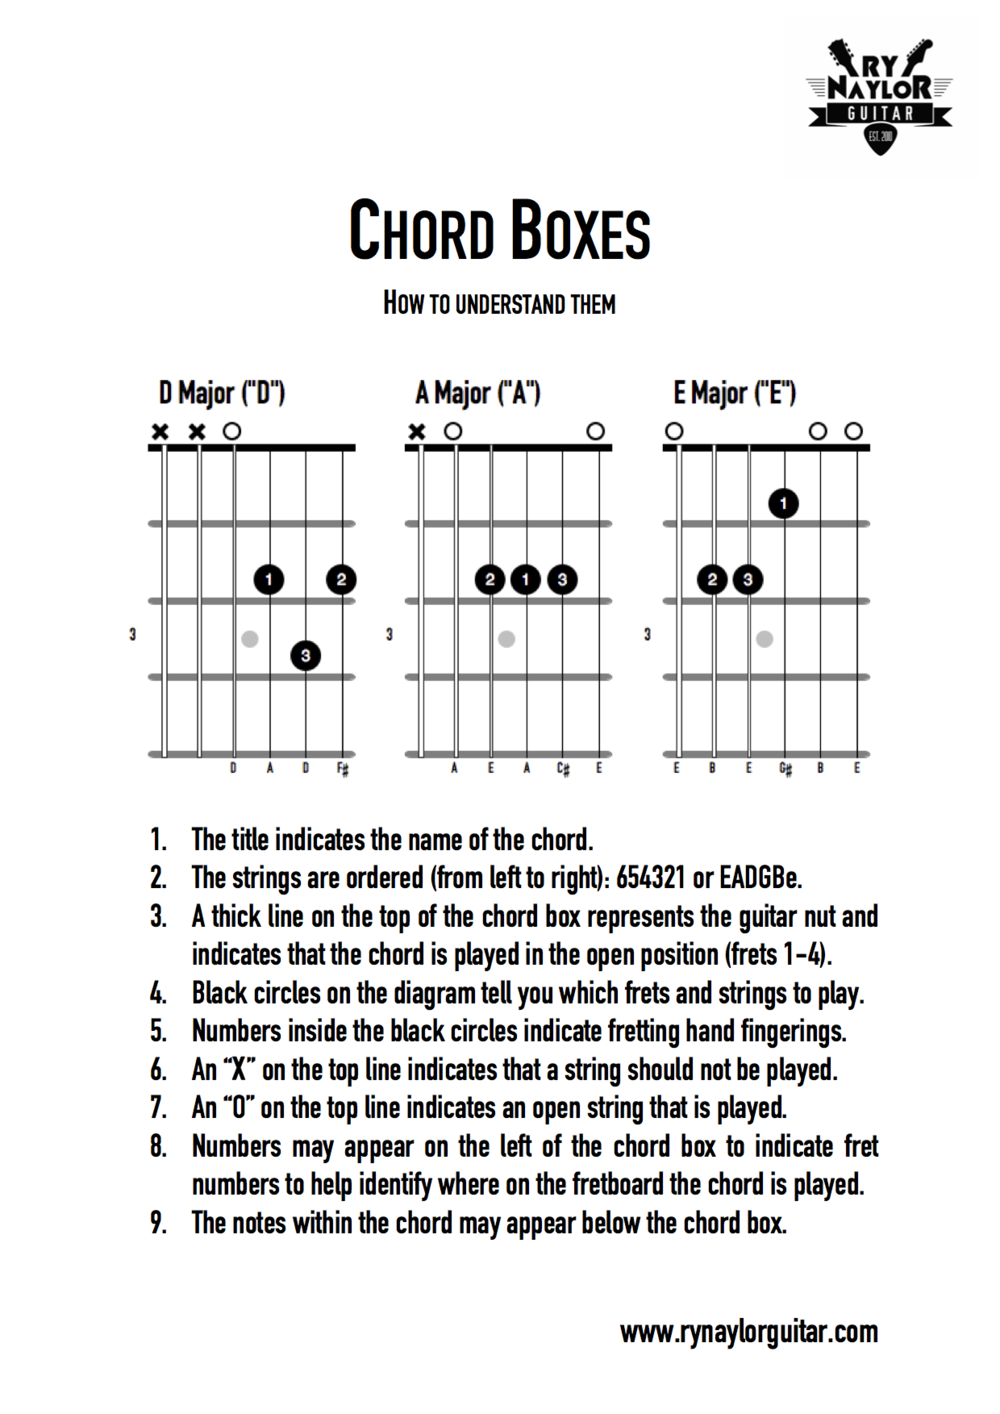 Sg 04 Chords Ry Naylor Guitar Free Online Guitar Lessons